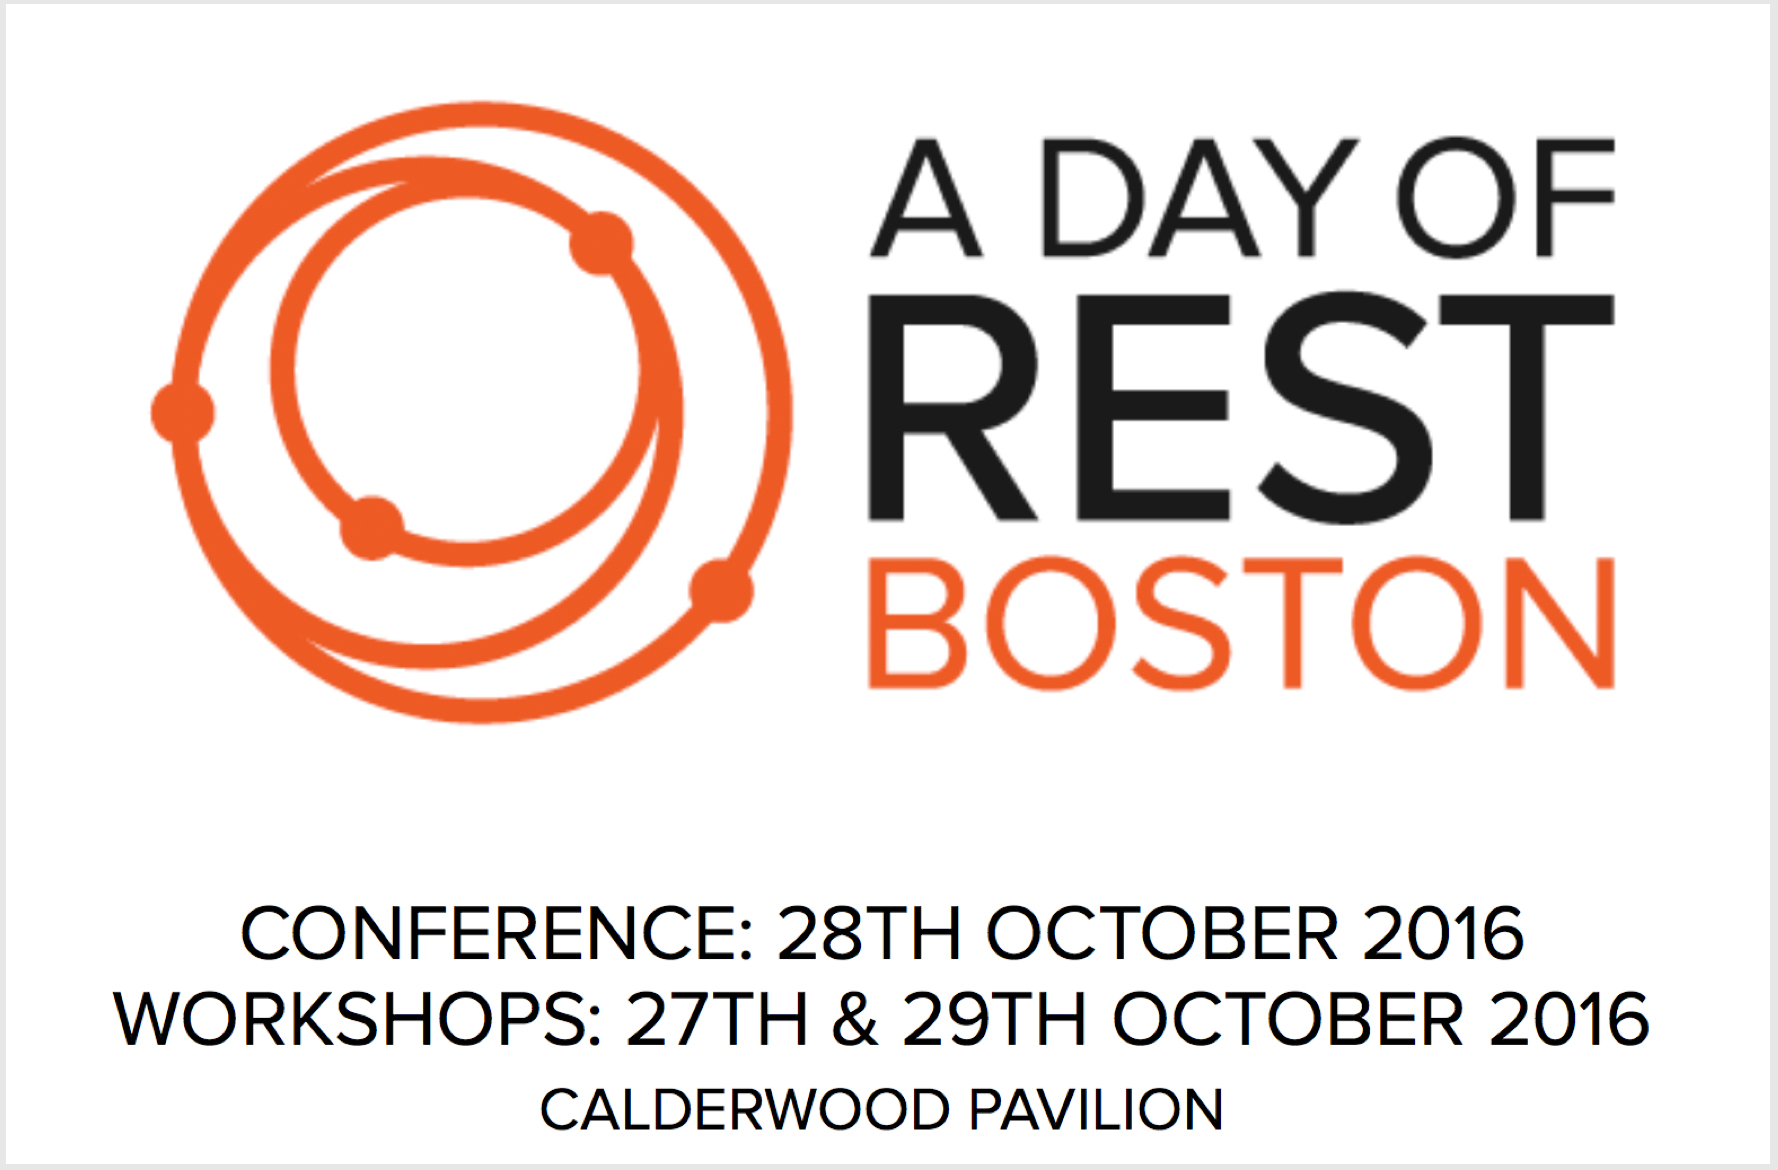 A Day of REST Boston - 28 October, 2016